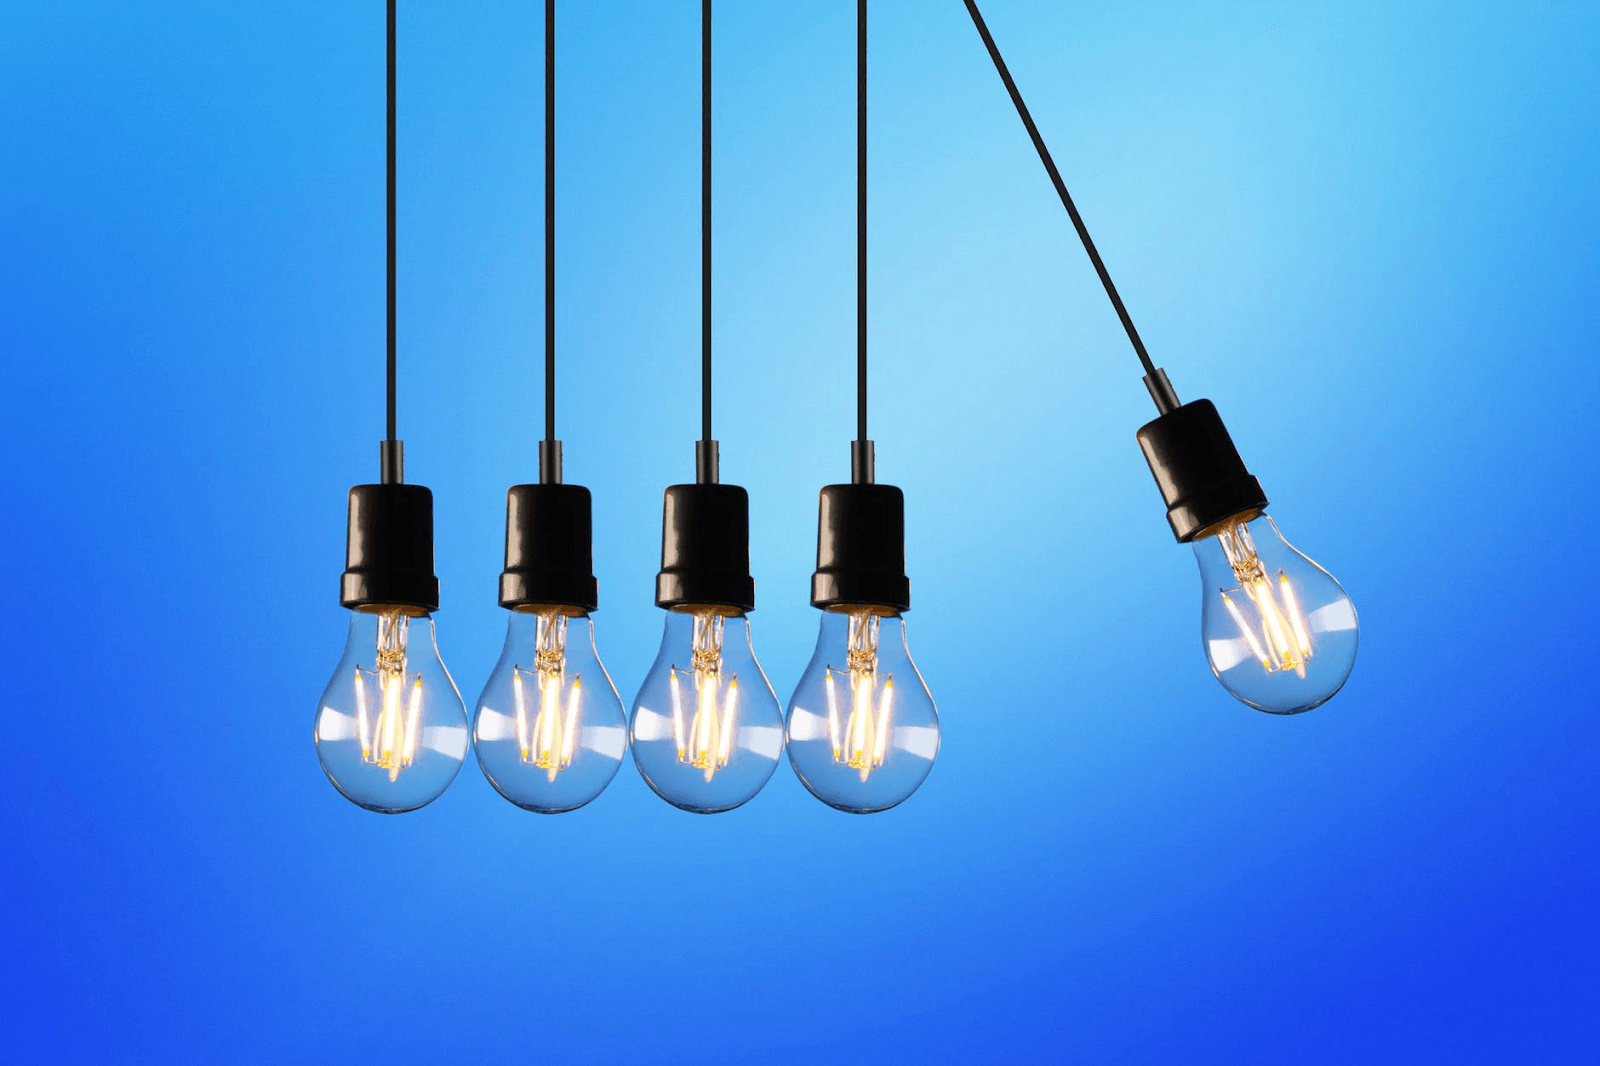 Five hanging light bulbs with a blue background.